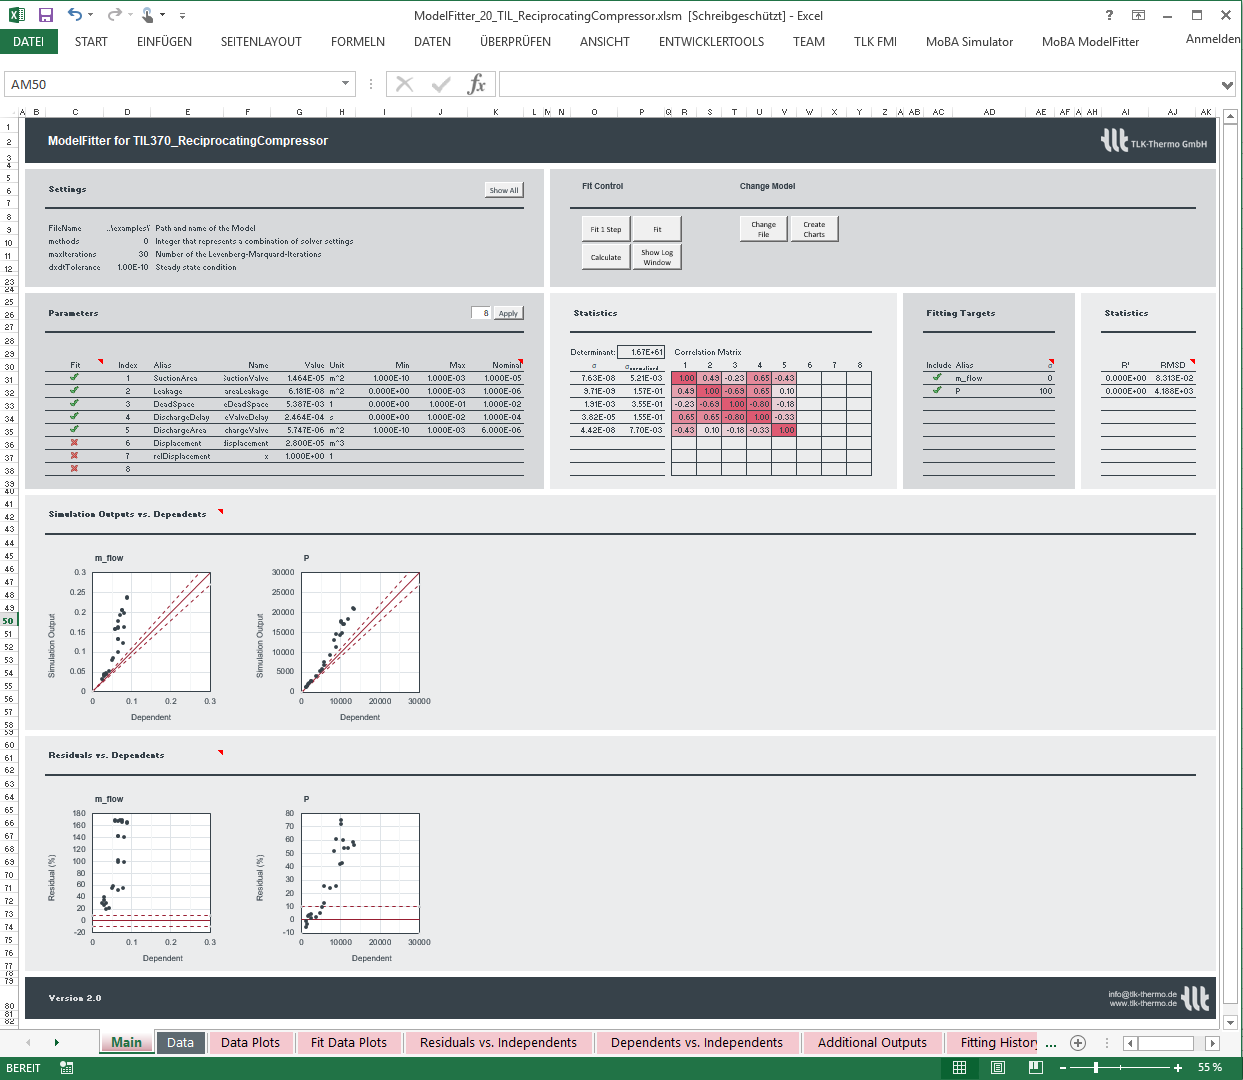 Excel interface of the ModelFitter